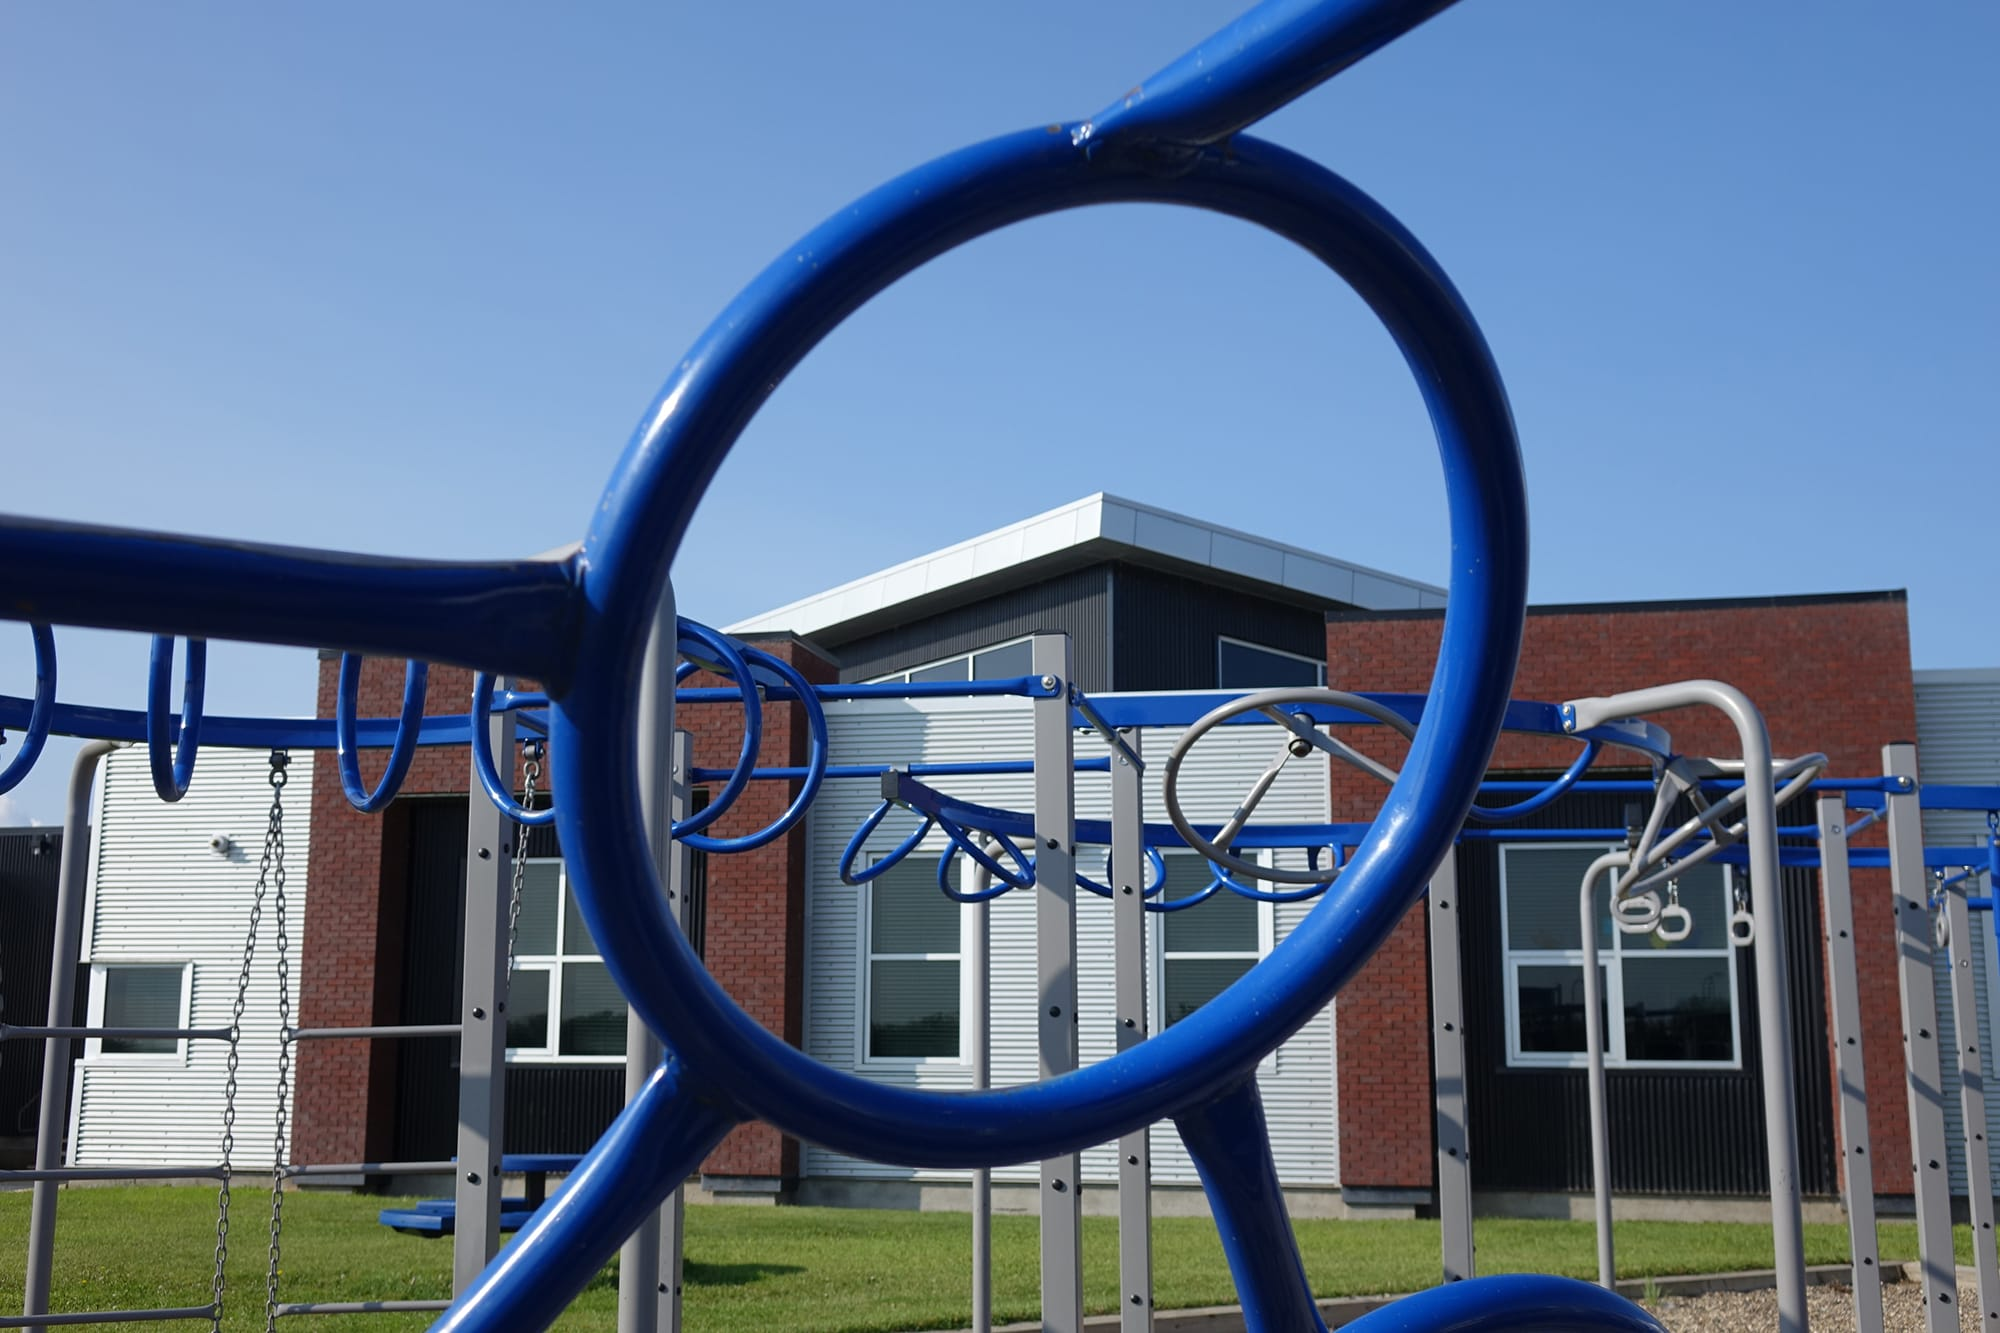 Clairmont Community School and Wellington Resource Centre from the playground